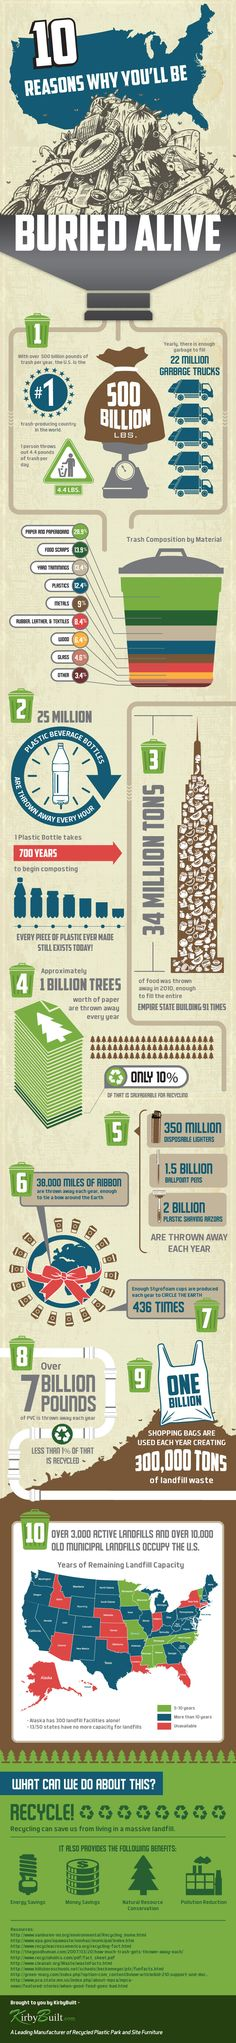 3 Fascinating Earth Day Statistics